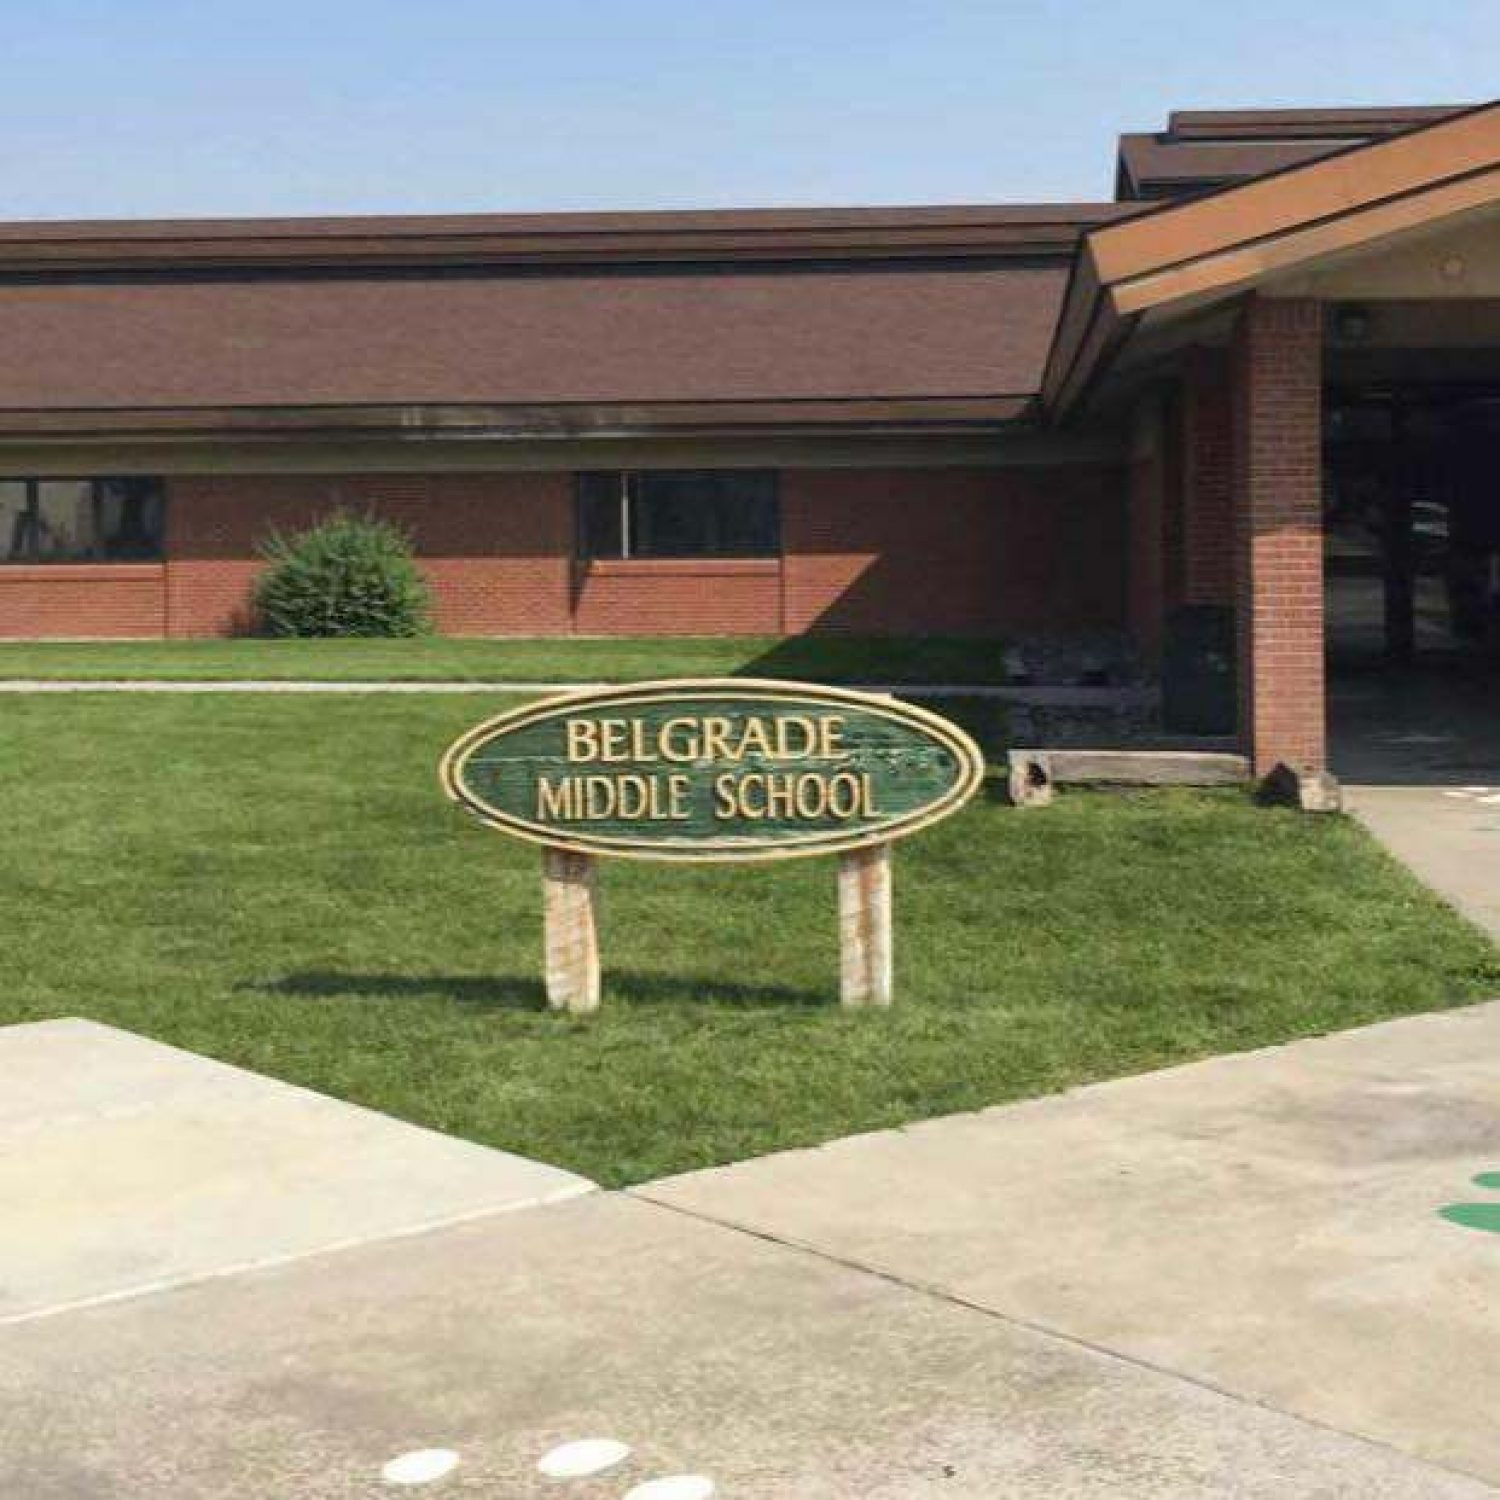 Belgrade Middle School